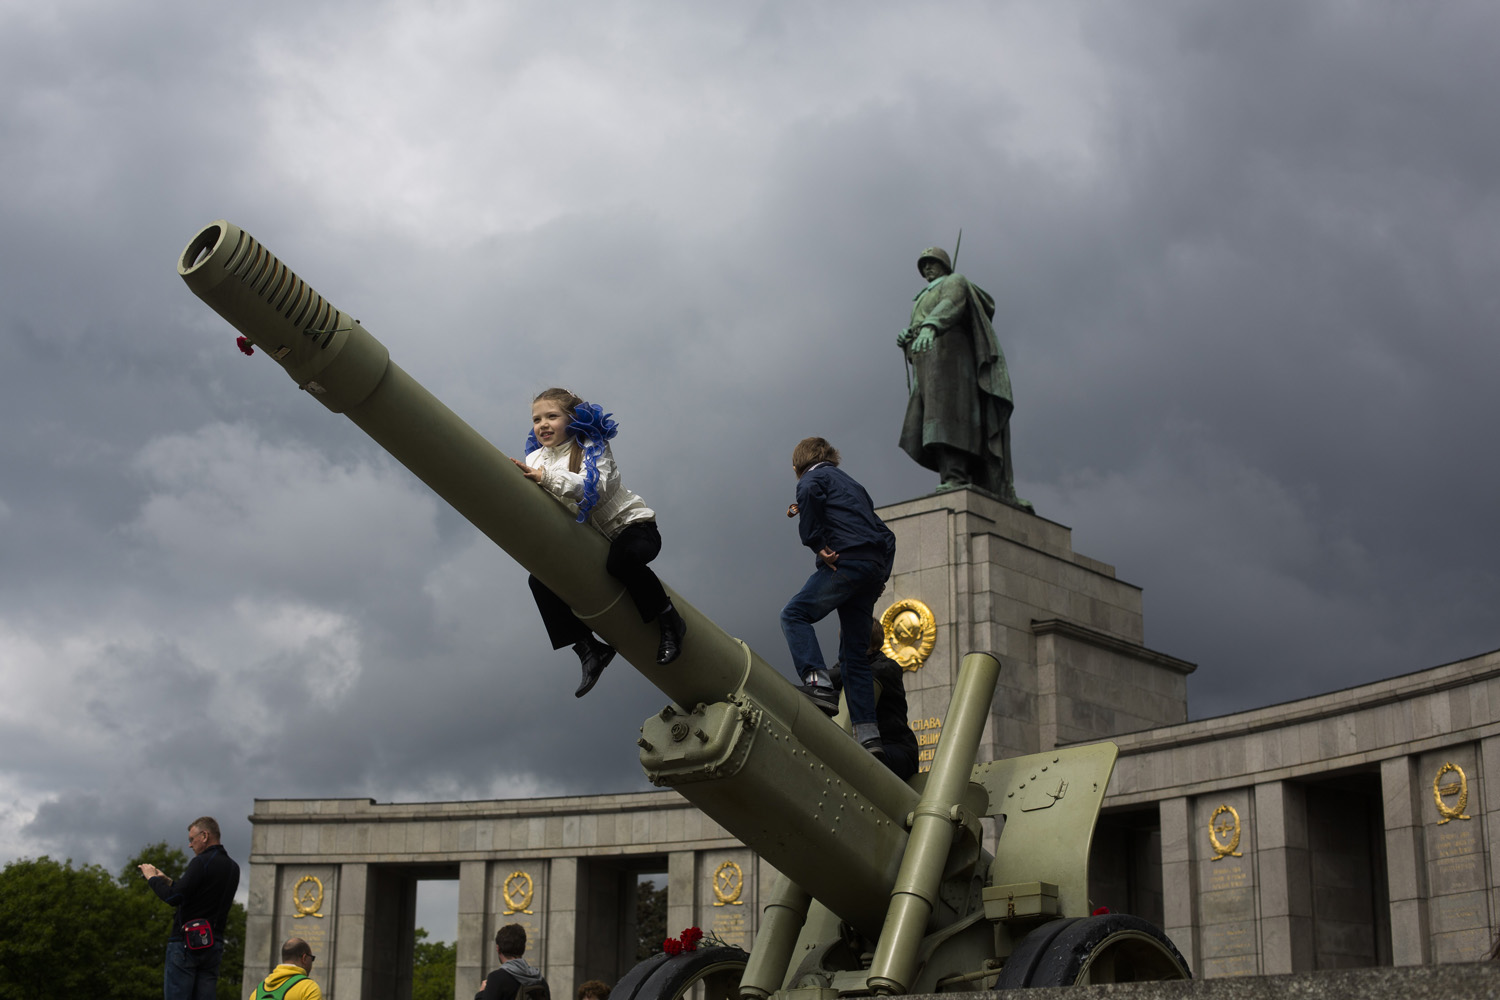 May 9 , 2014. A Russian girl plays with other children on an ordnance during the celebrations of Victory Day at the Soviet war monument and cemetery at the district Tiergarten in Berlin, Germany.